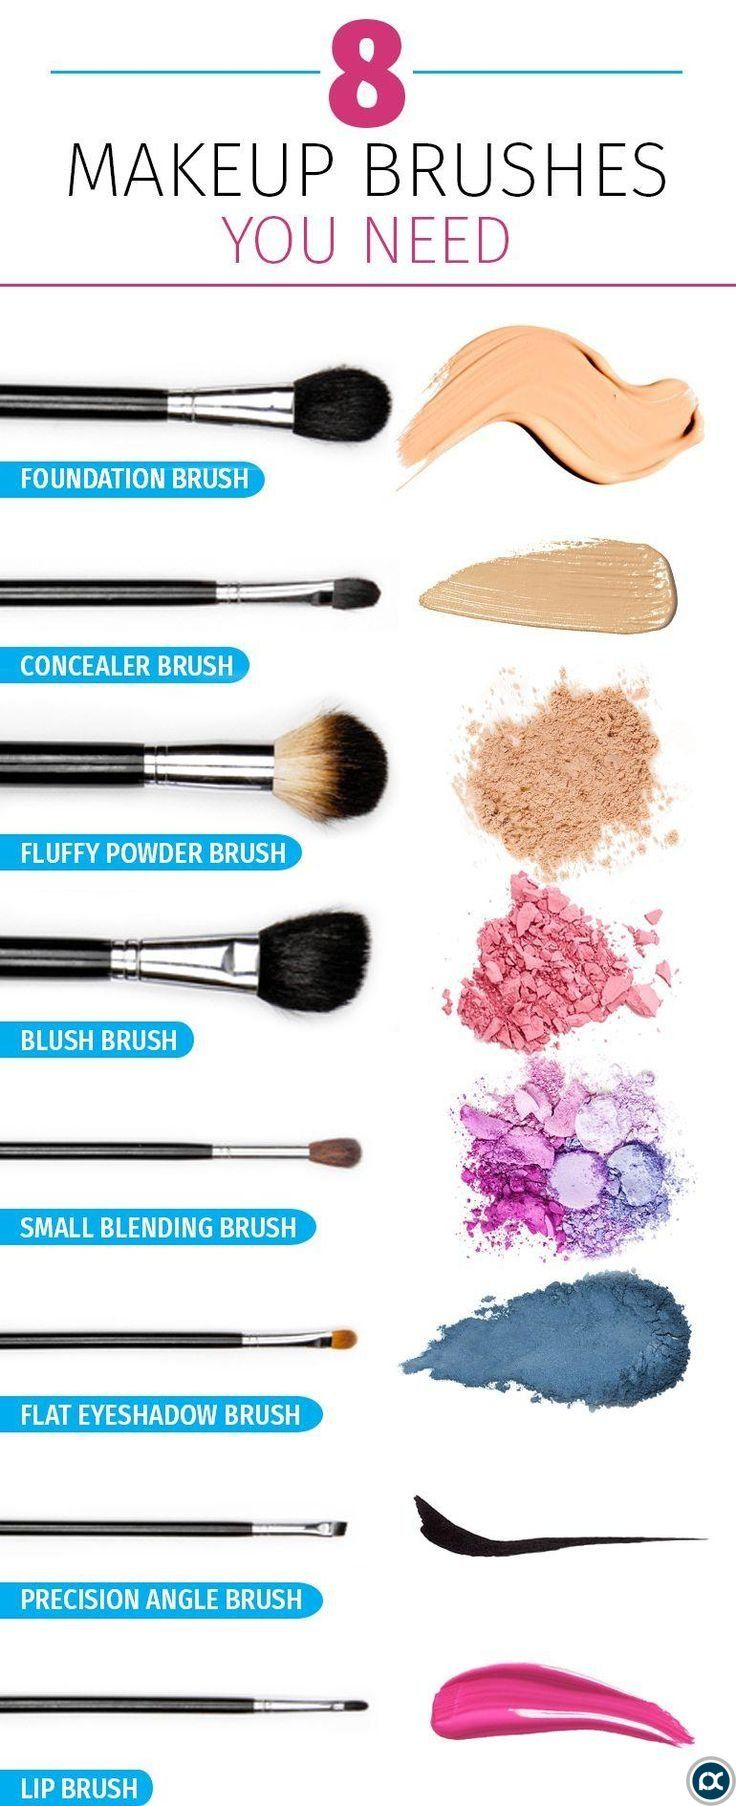 This makeup brushes guide will make sure you have